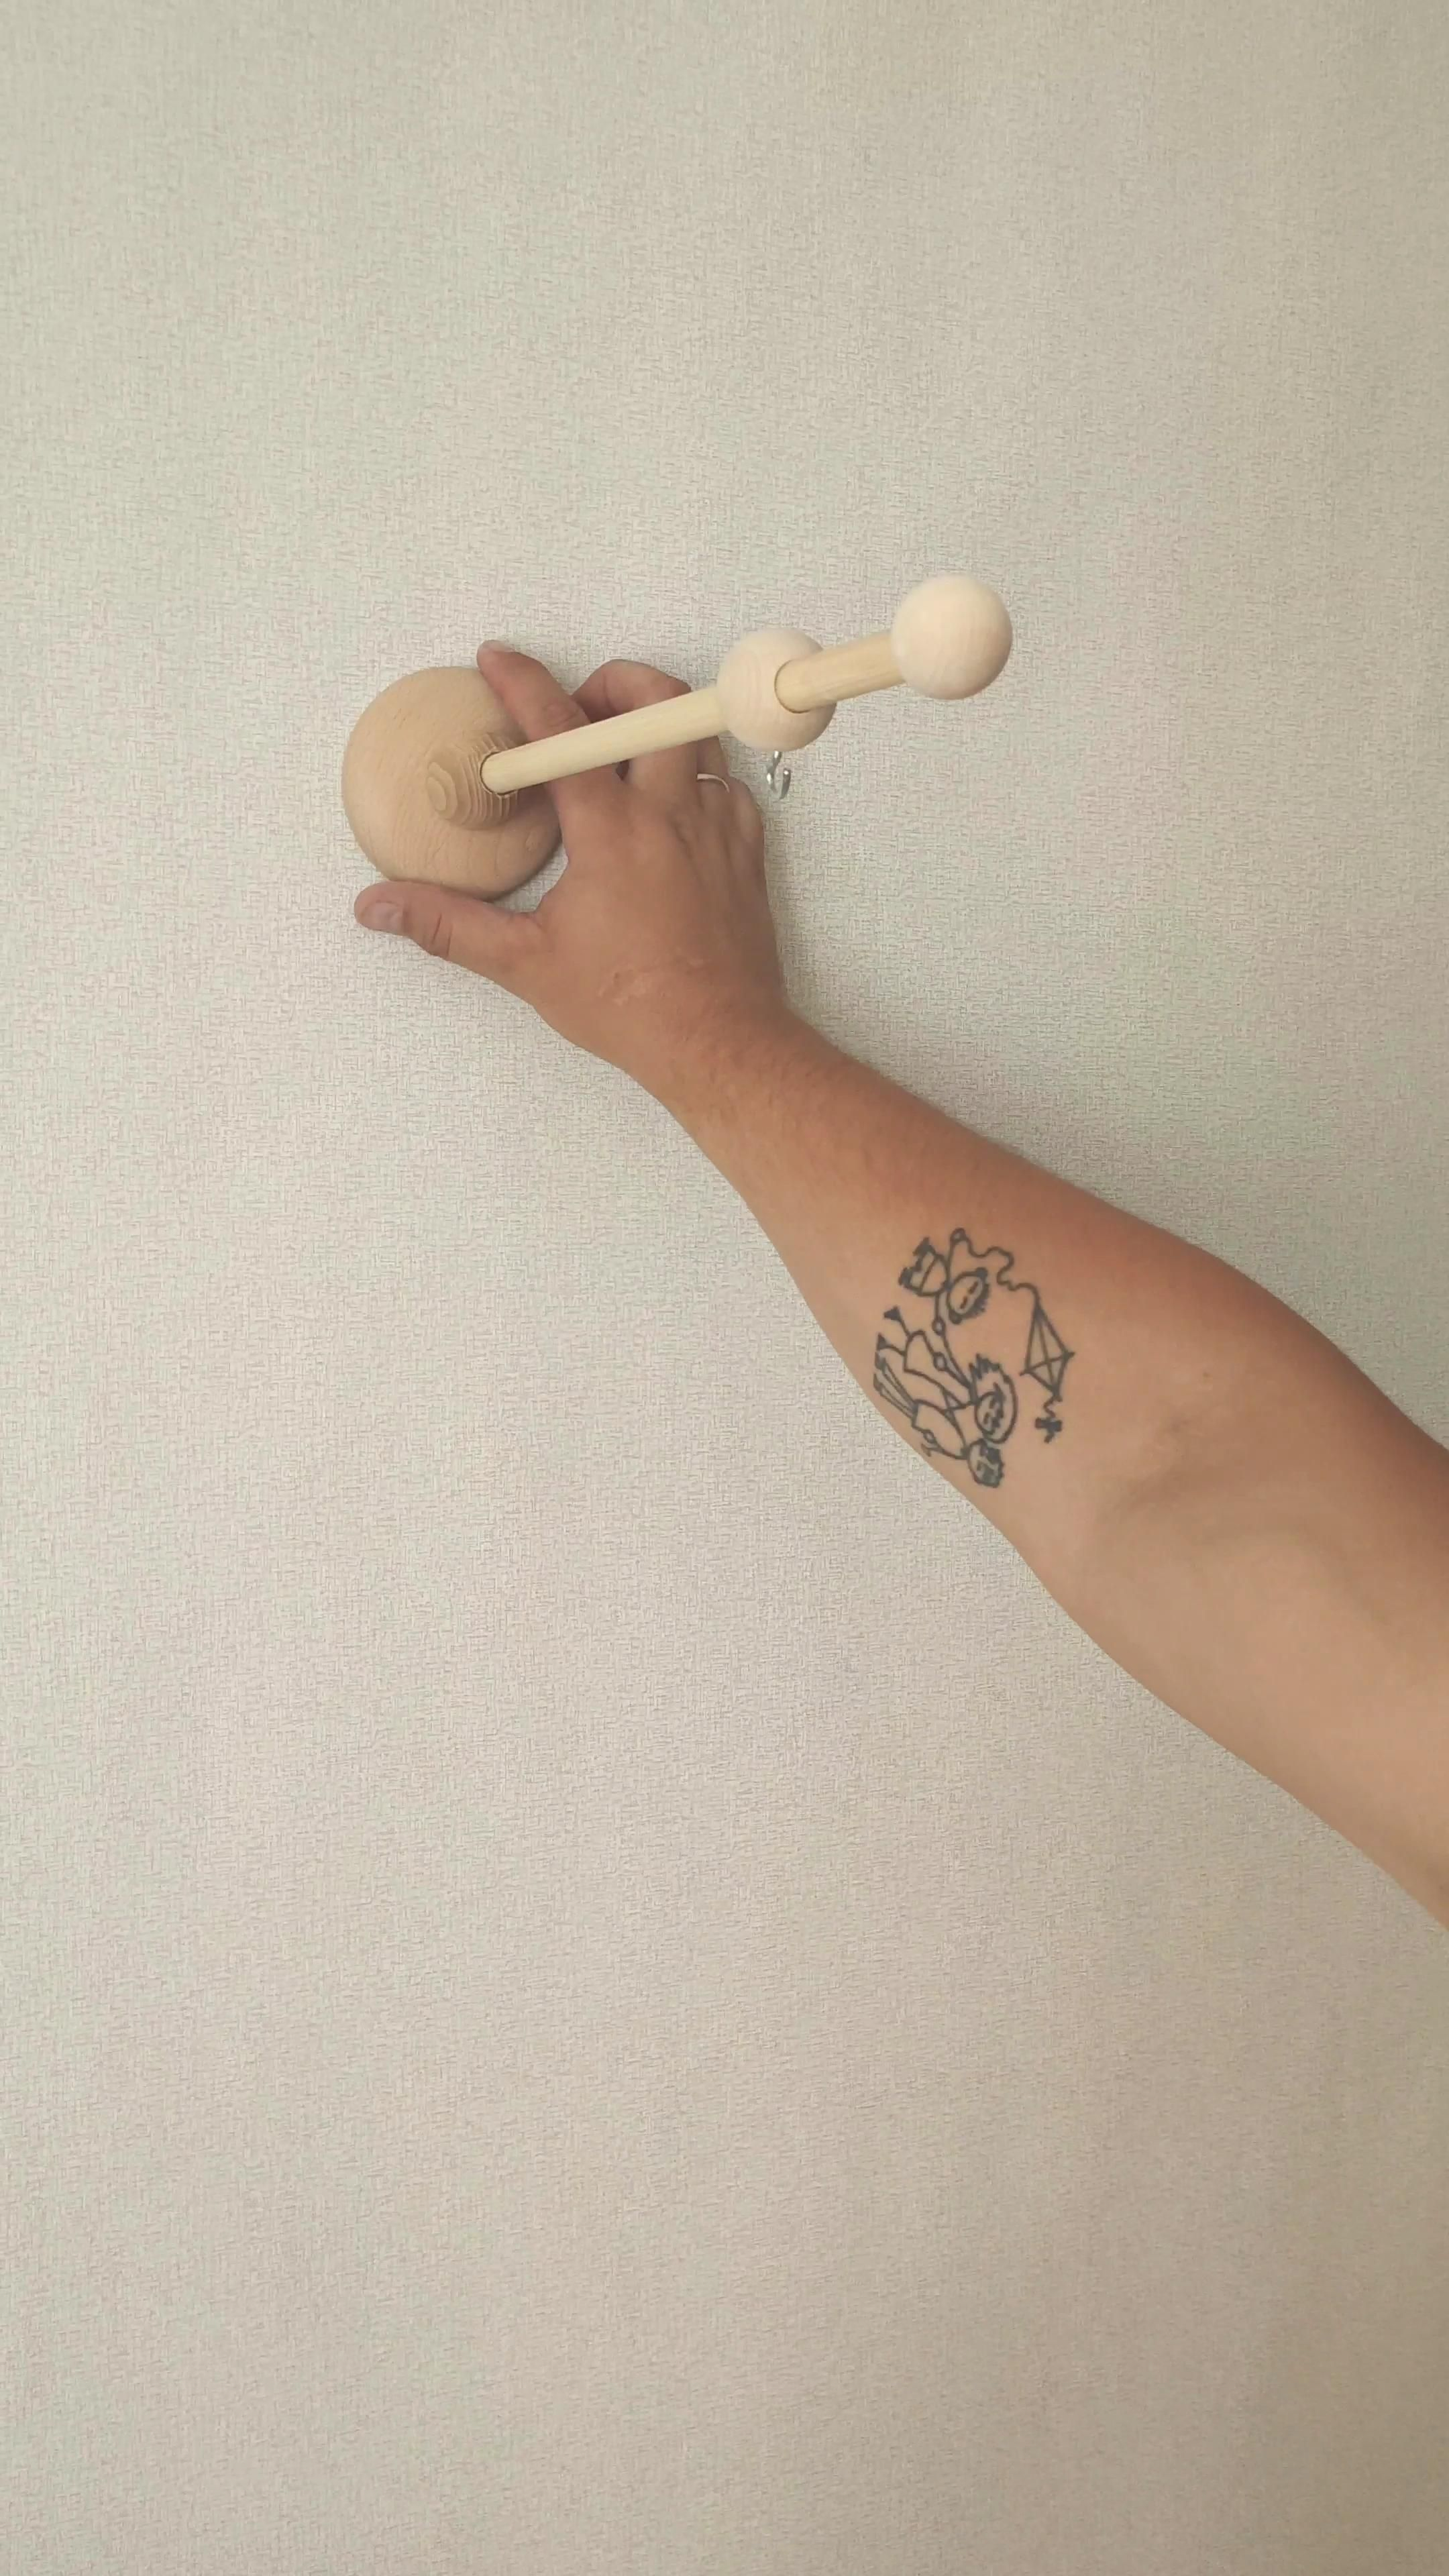 Wall Wood Arm For Baby Mobile With Music Box Wooden Mount For Mobile Hanging Beech And Pine Nursery Mobile Holder Video Video In 2020 Wood Arms Baby Mobile Felt Material